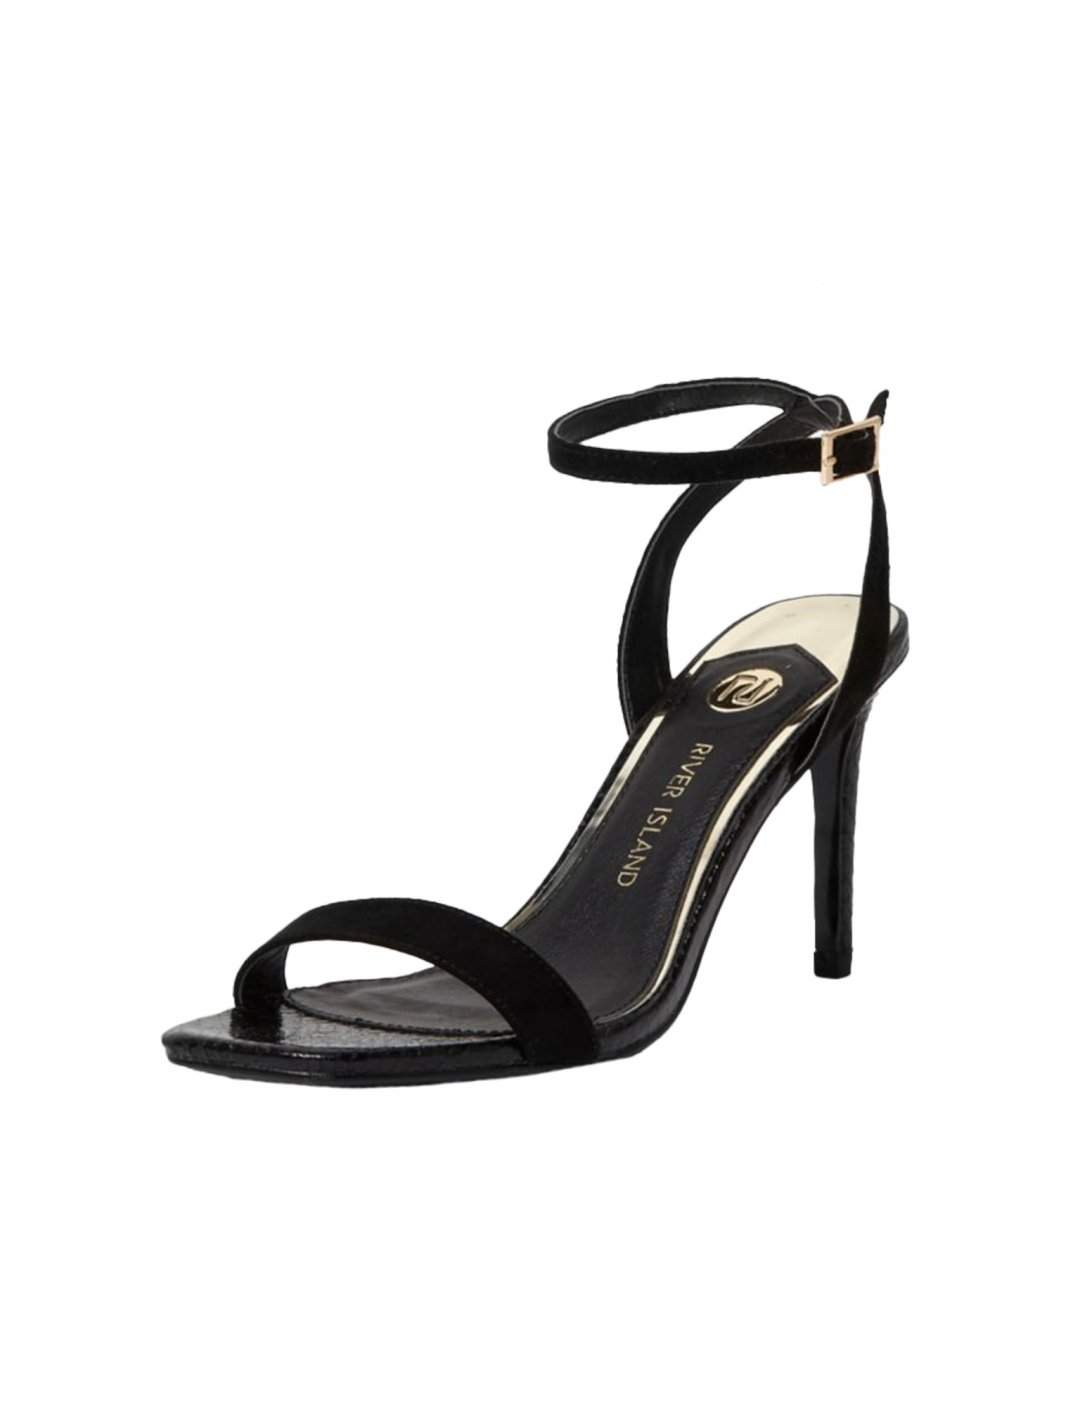 "River Island Strappy Sandals {""id"":12,""product_section_id"":1,""name"":""Shoes"",""order"":12} River Island"